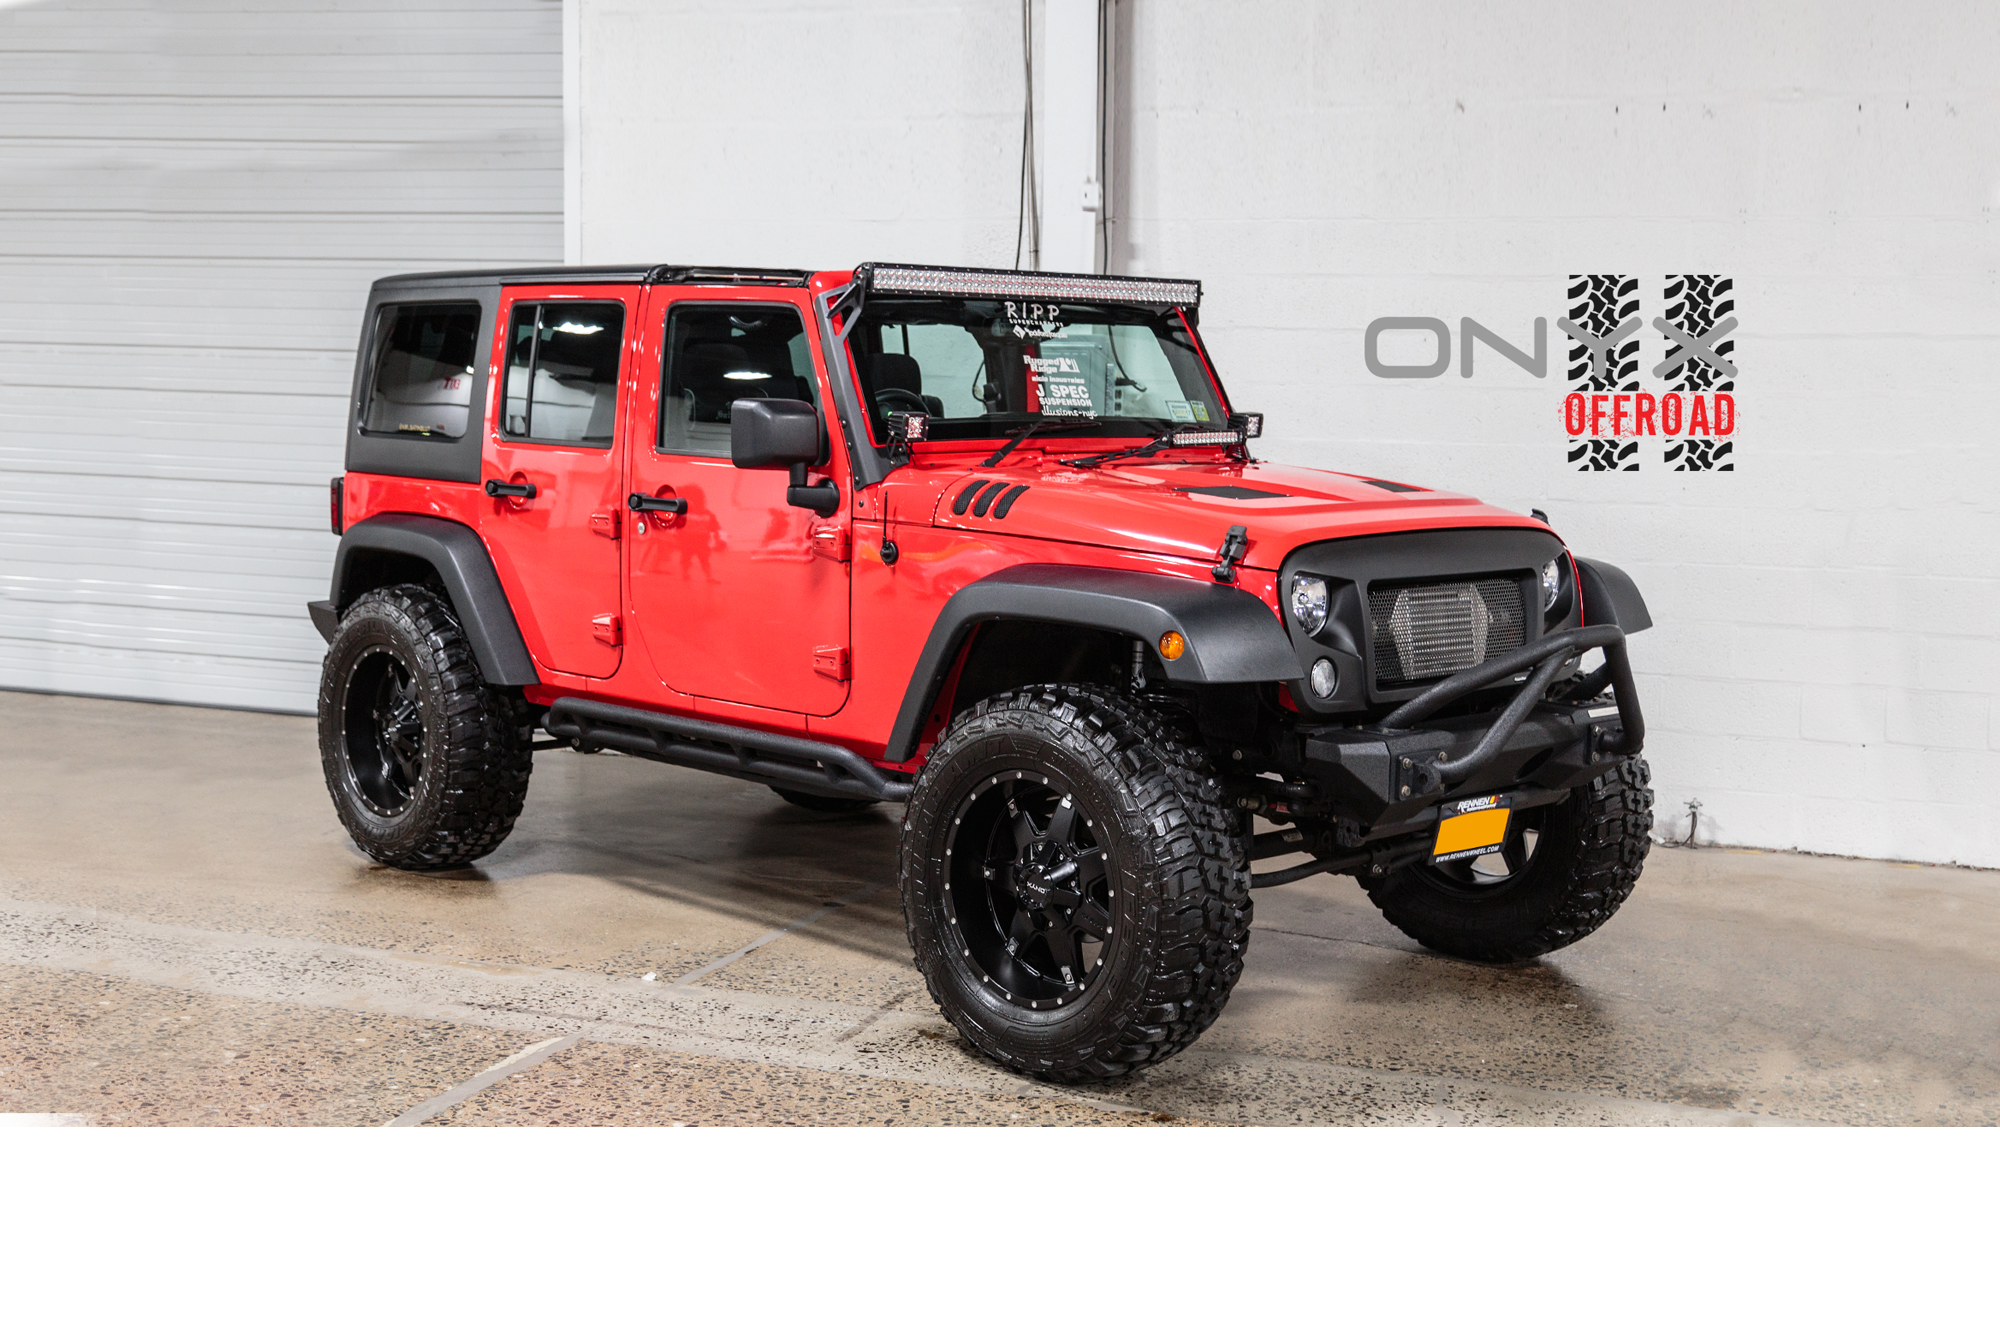 Jeep Wrangler OR 96